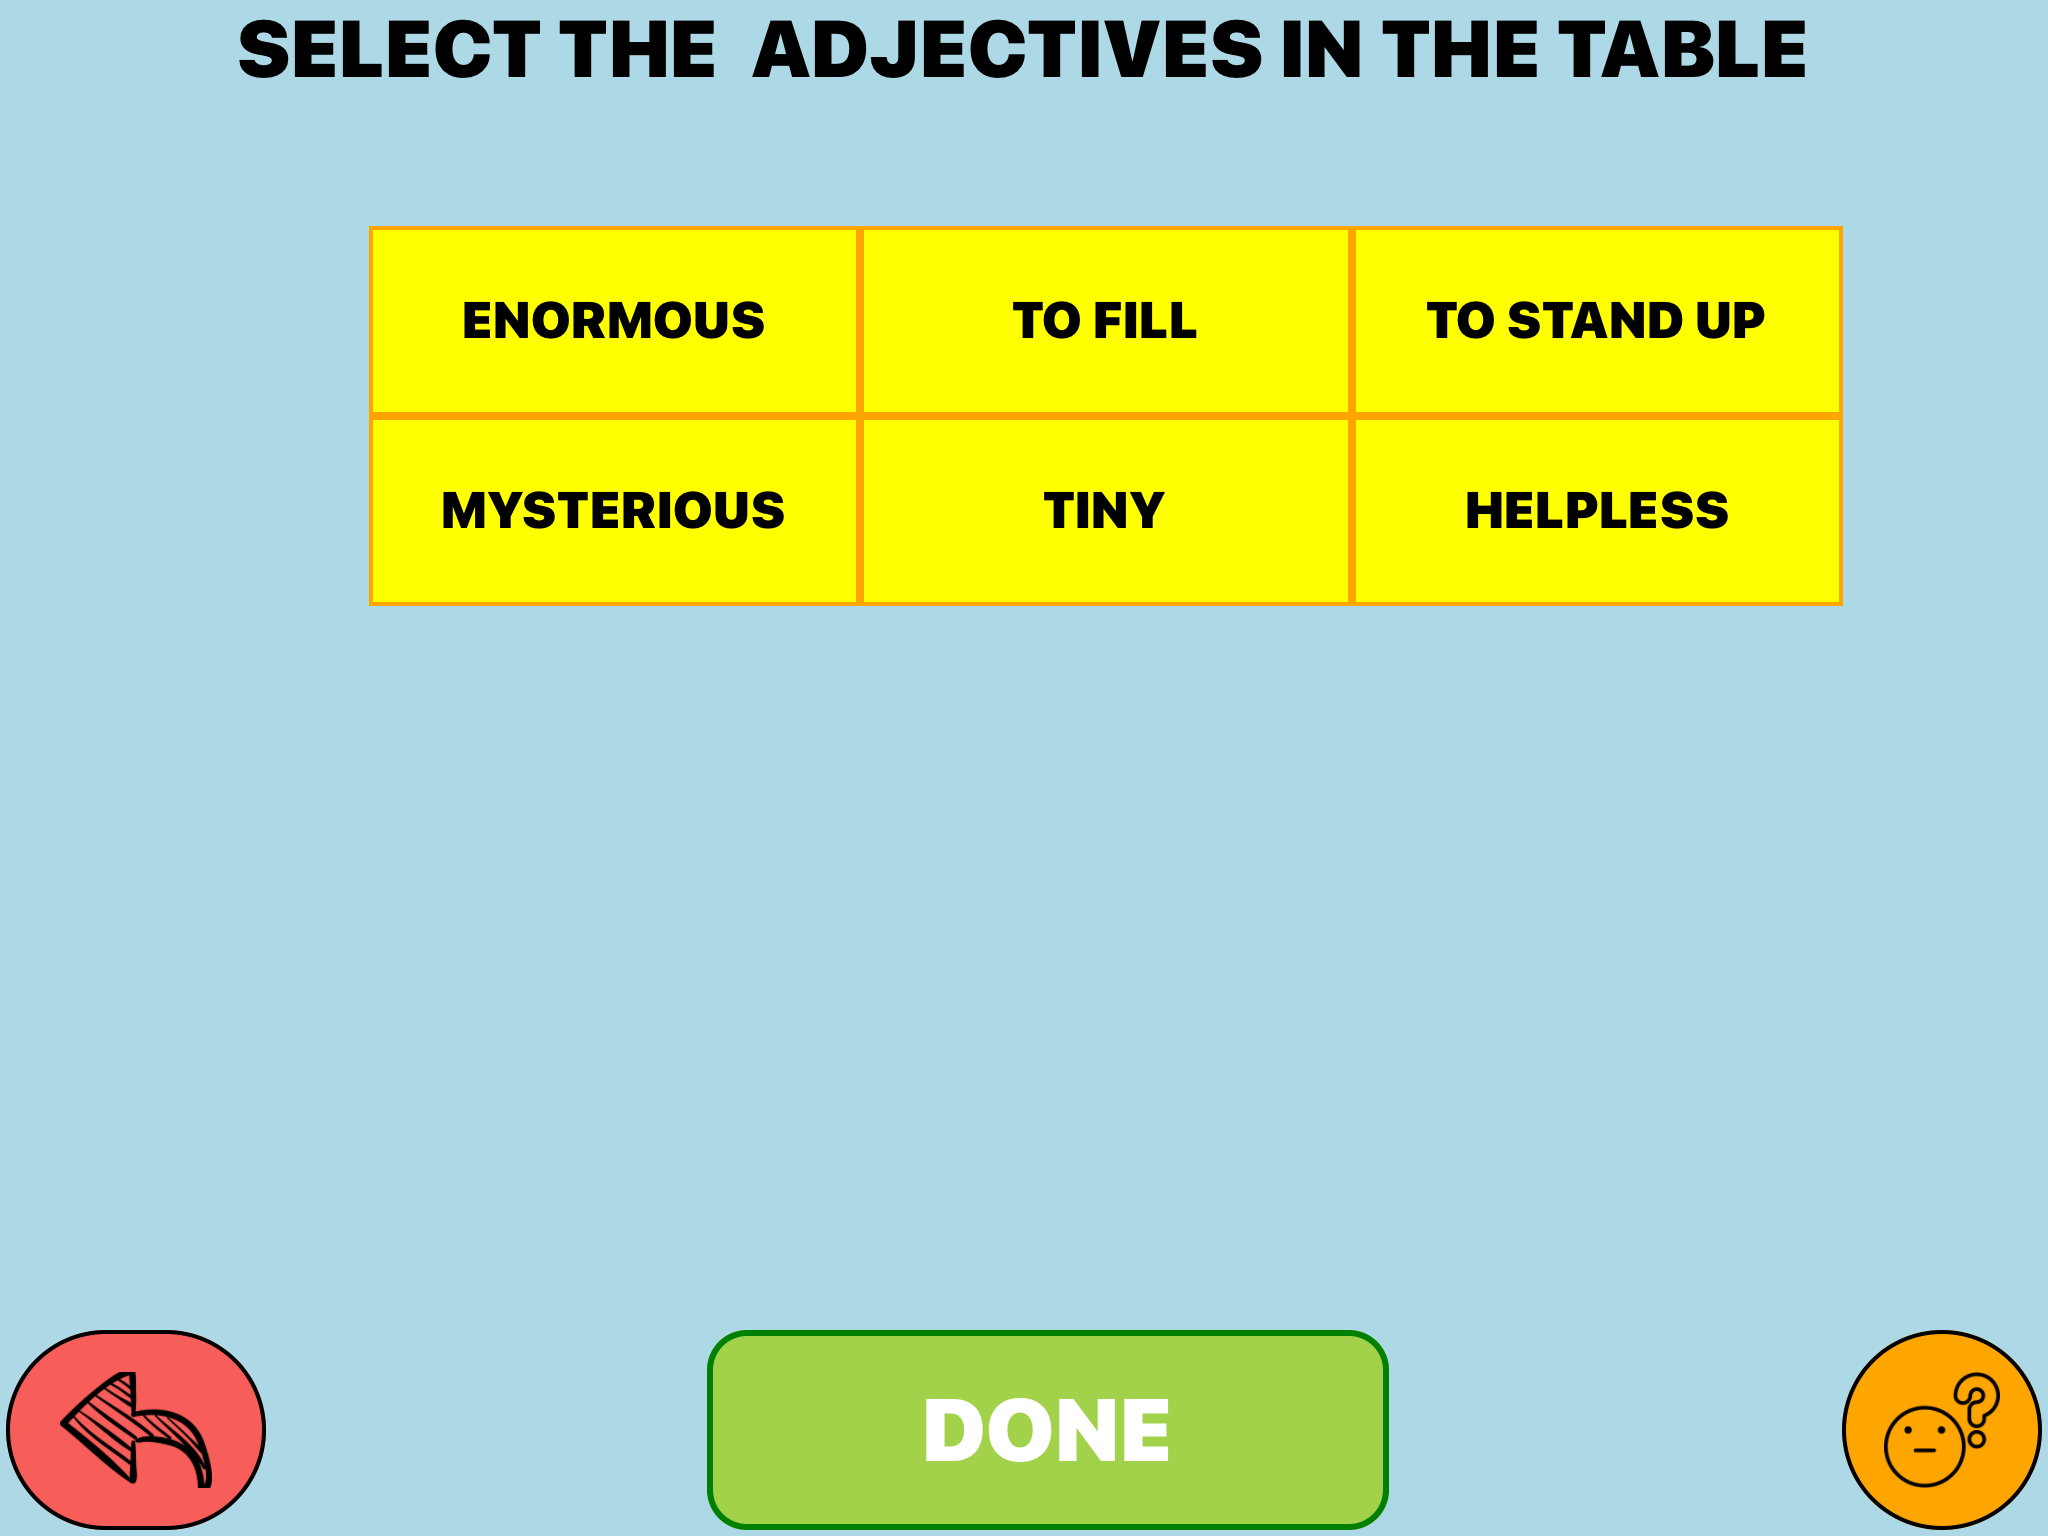 """Select the adjectives in the table"" 2x3 table with the word choices, enormous, to fill, to stand up, mysterious, tiny, helpless."